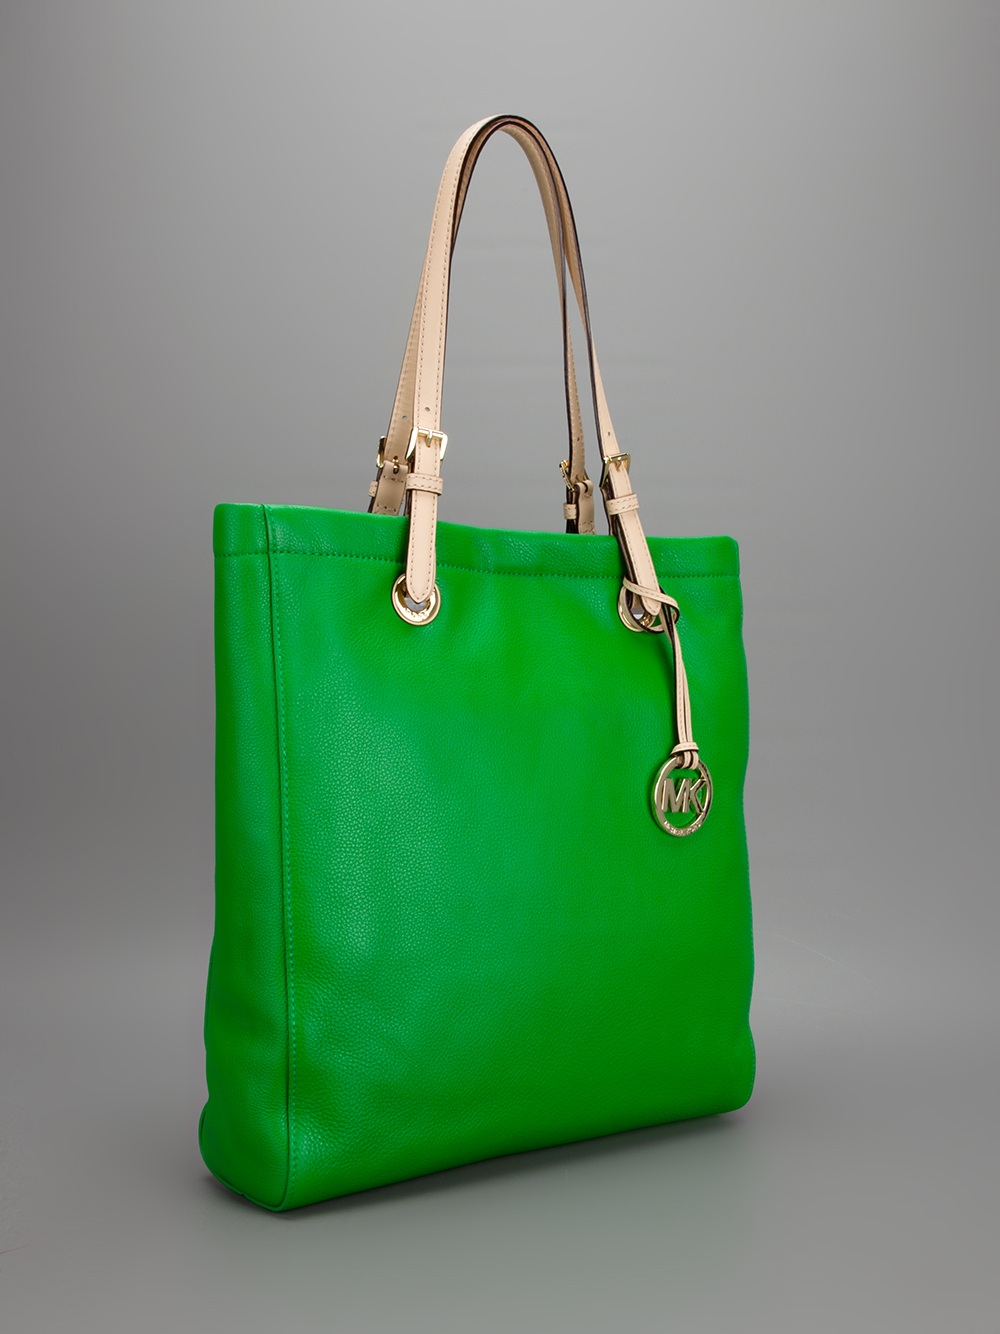 lyst michael kors shoulder bag in green